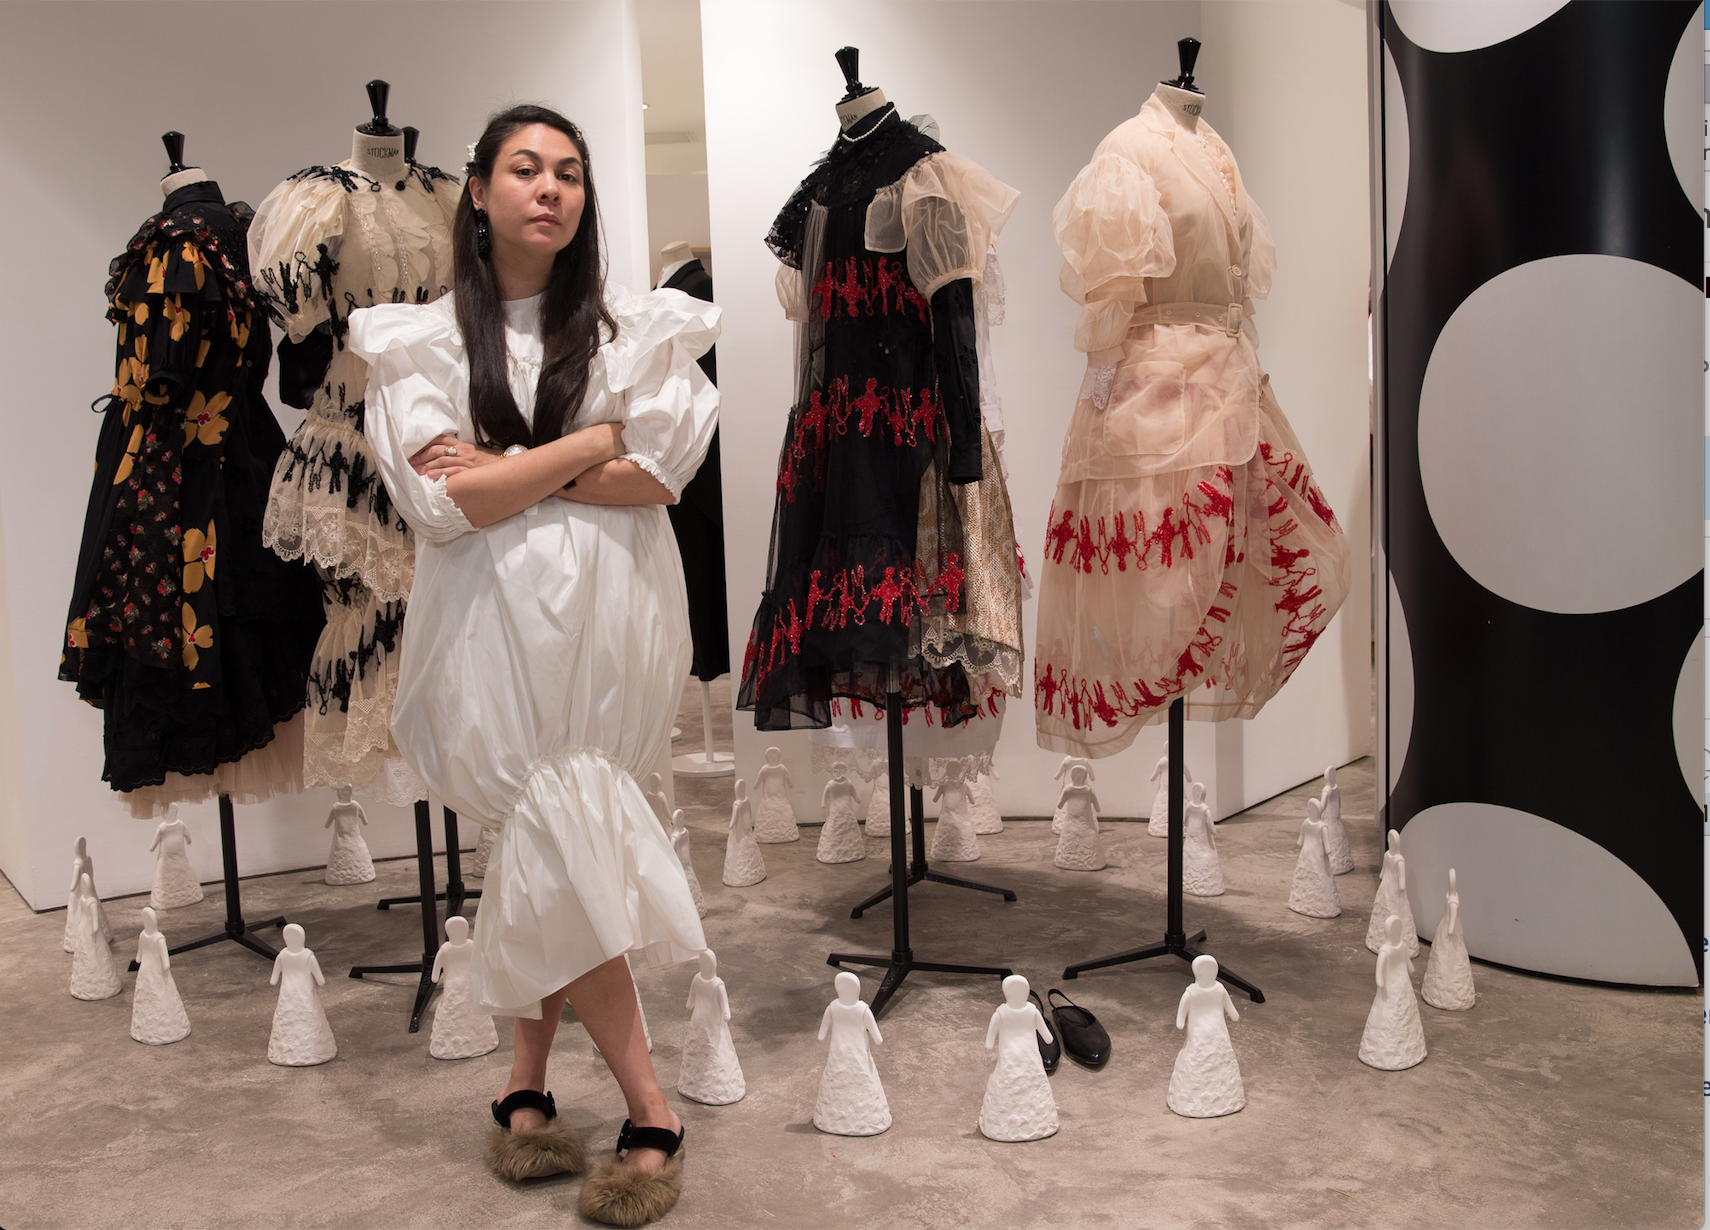 Designer Simone Rocha standing in front of her installation at the opening of the Dover Street Market in Beijing.